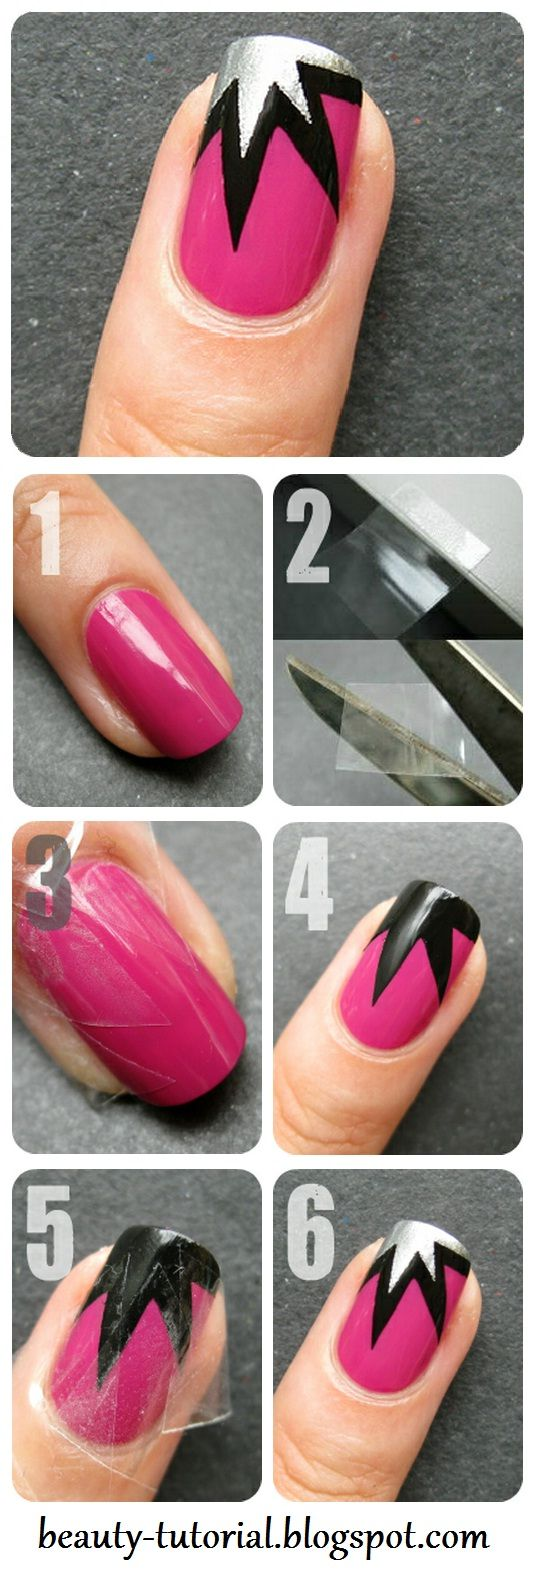 nail40 - 111 Nail Art Tutorials - Learn How To Do The Simple Ones To Intricate Details